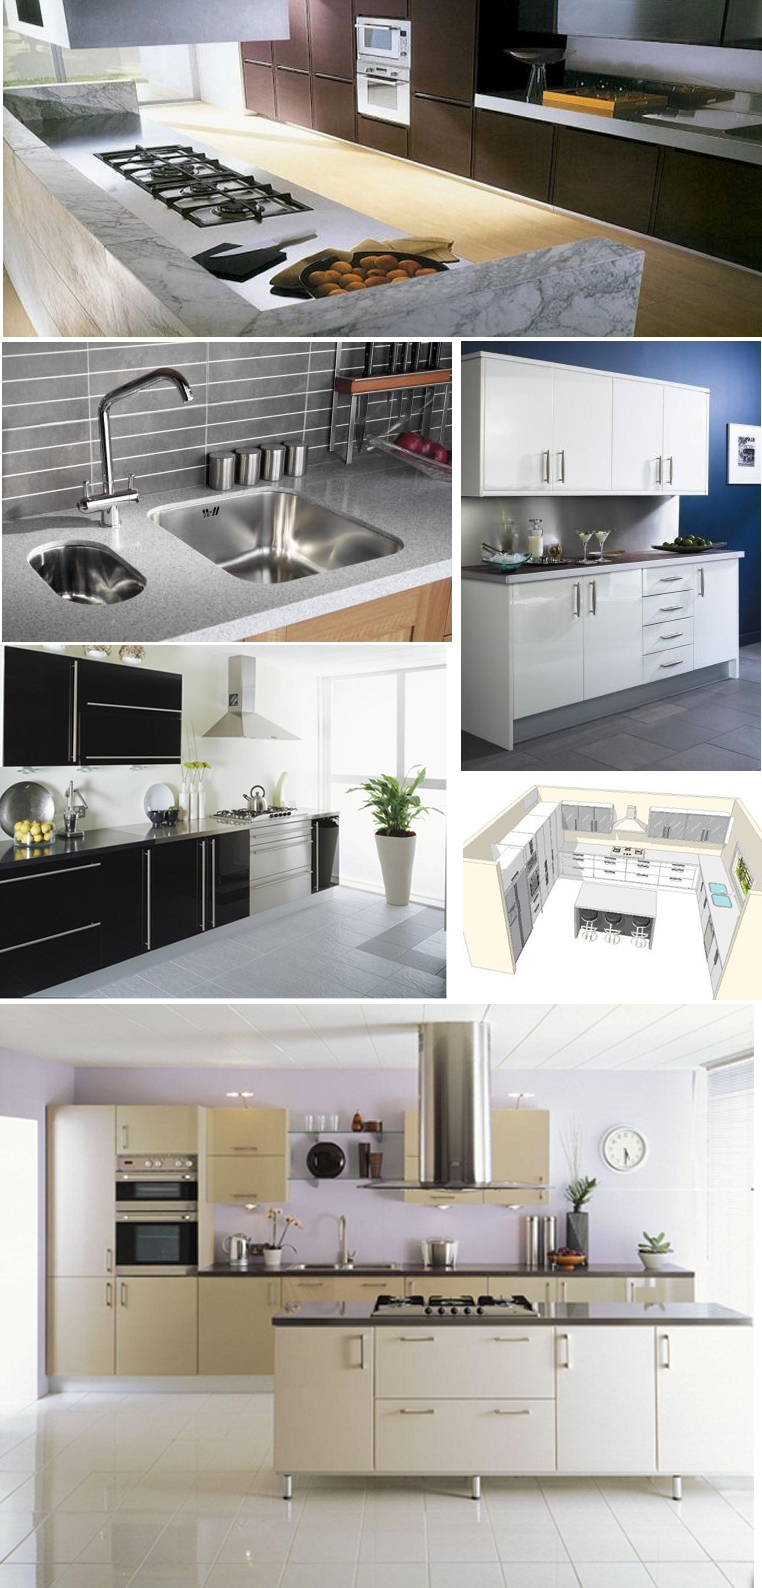 URBAN STYLE KITCHENS